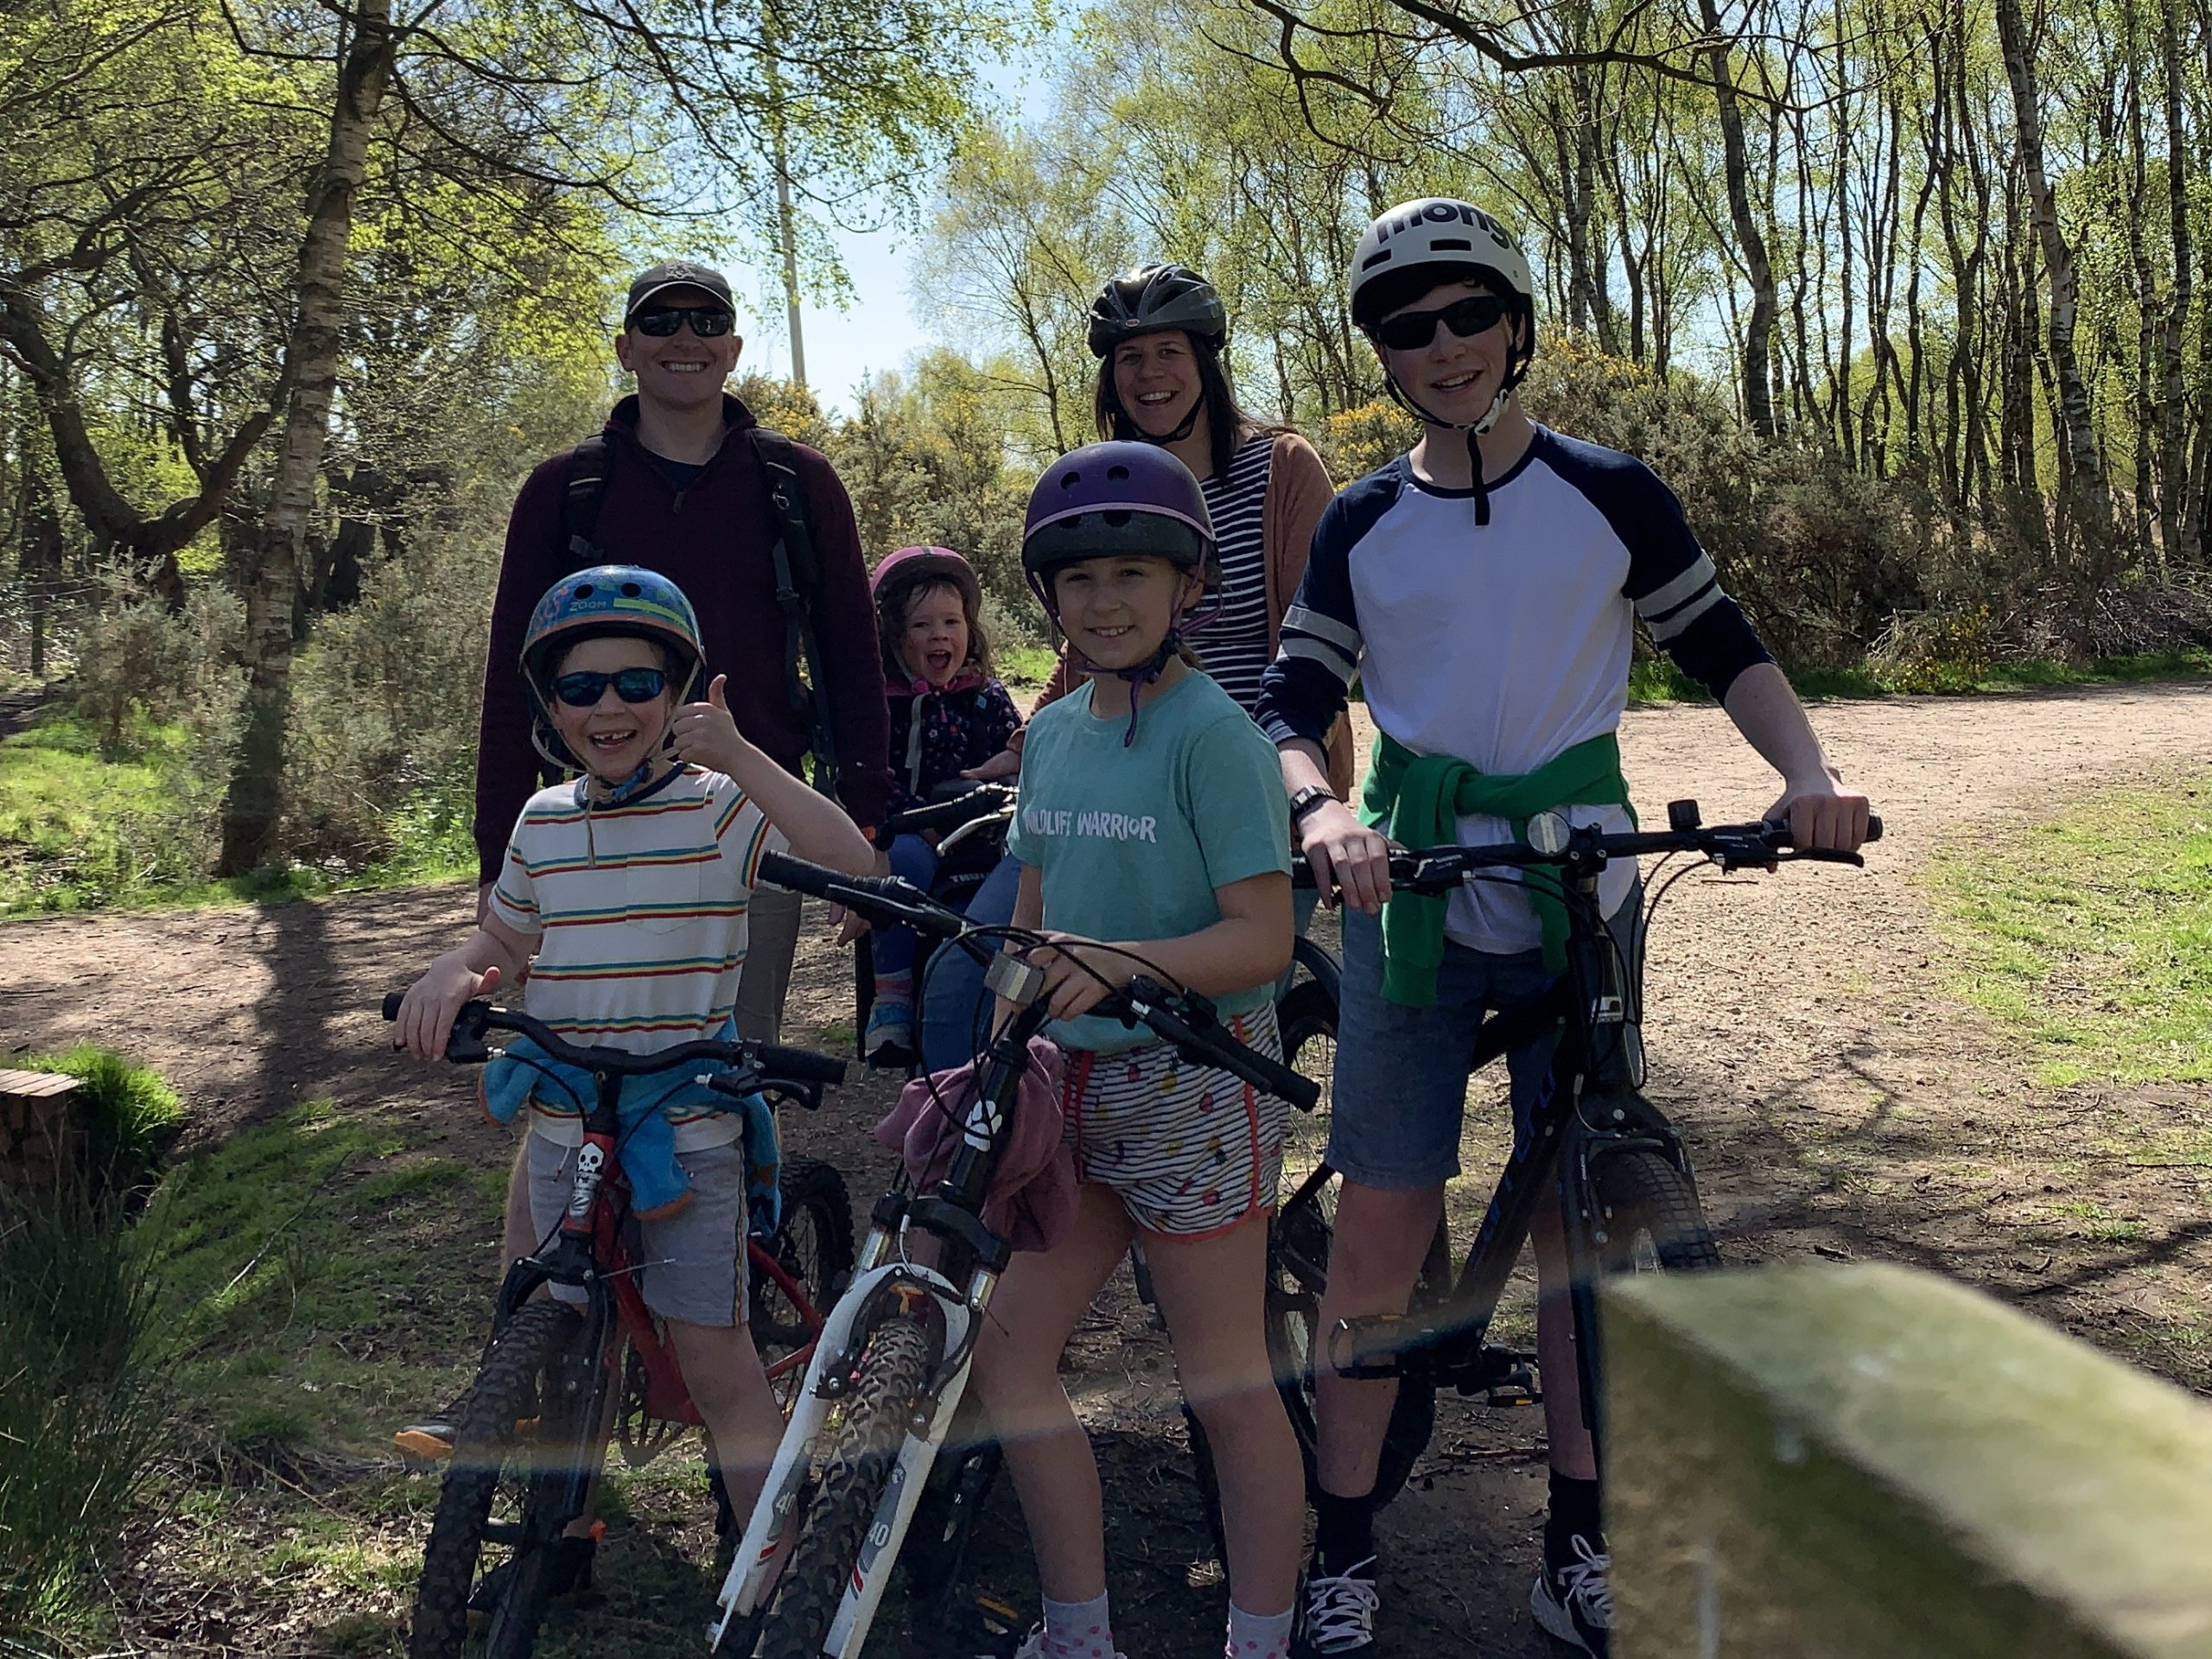 a family out cycling